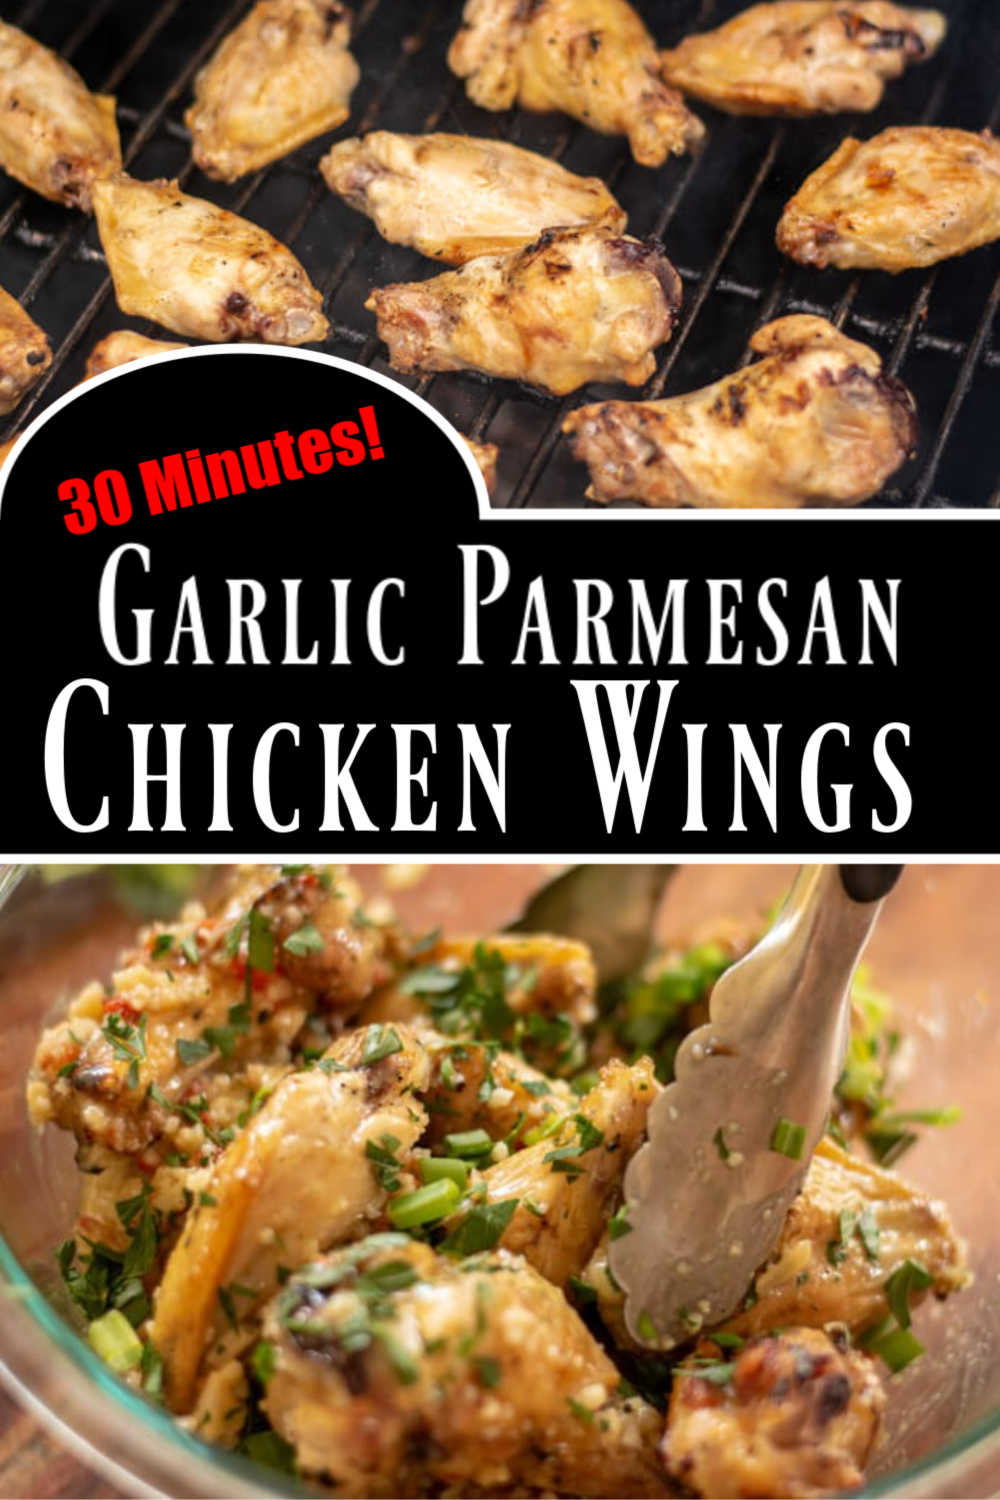 Grilled Garlic Parmesan Chicken Wings